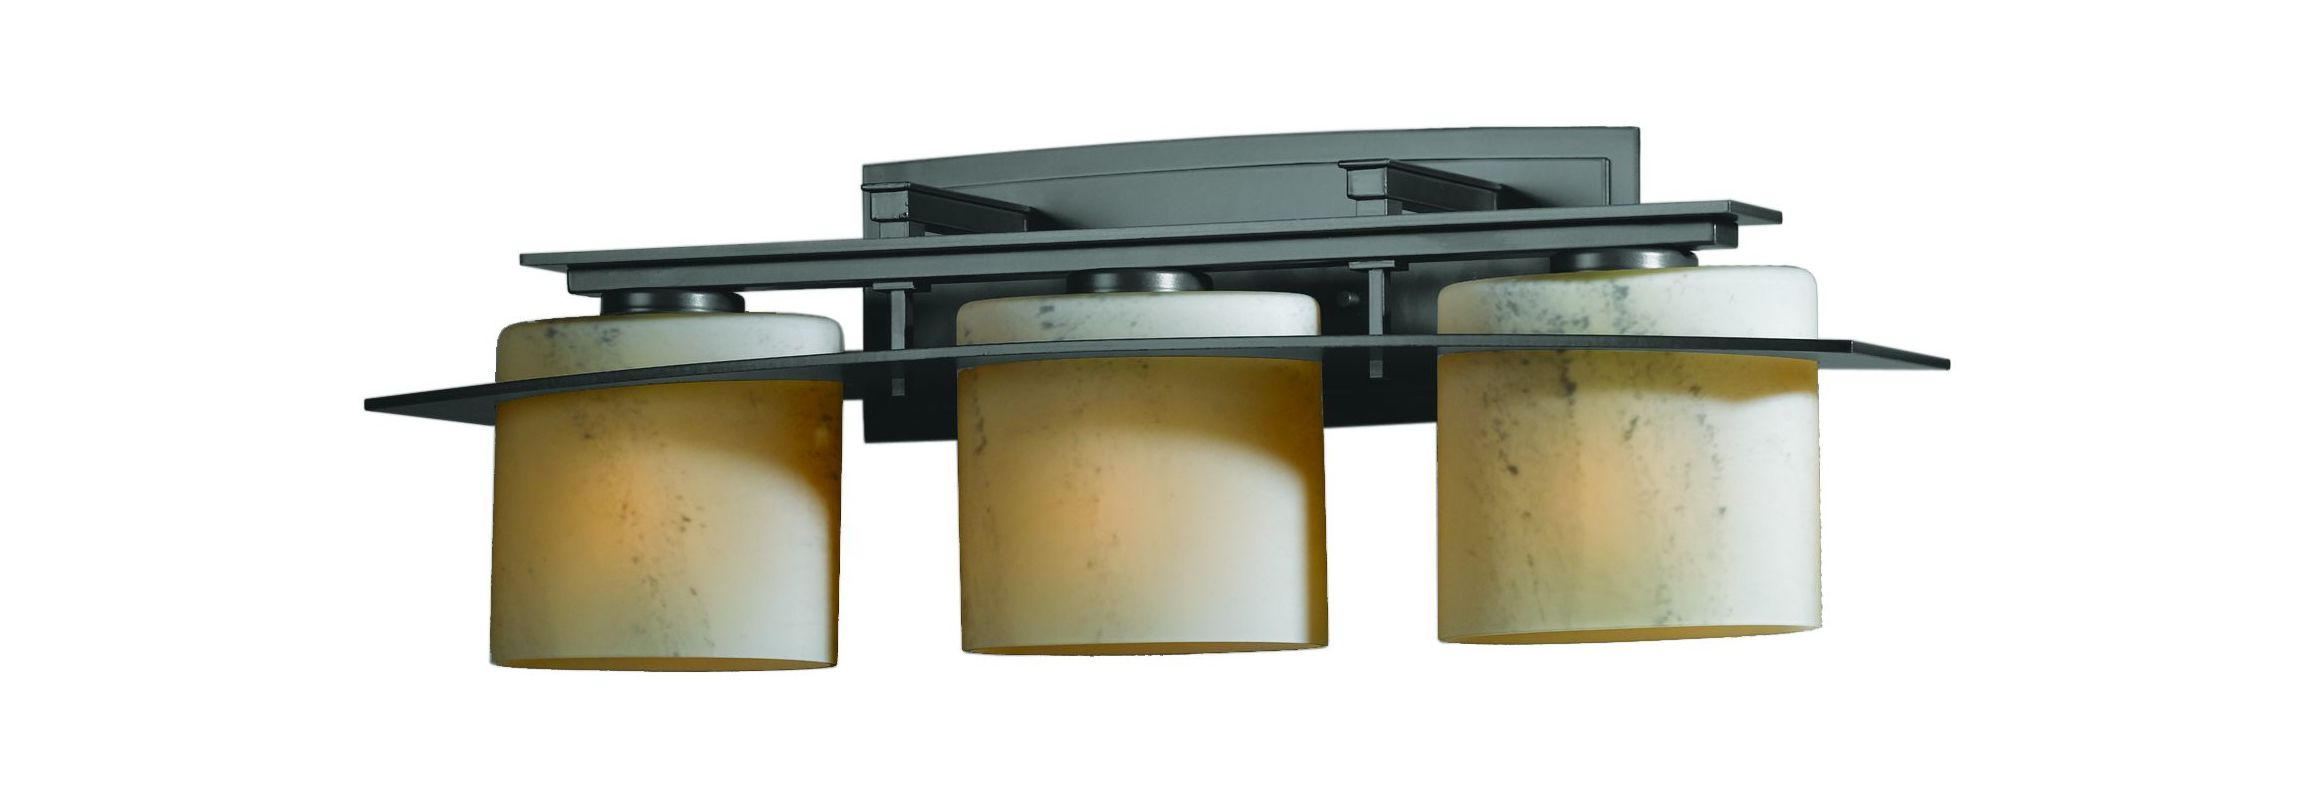 Hubbardton Forge 207523 3 Light Down Light Wall Sconce from the Arc